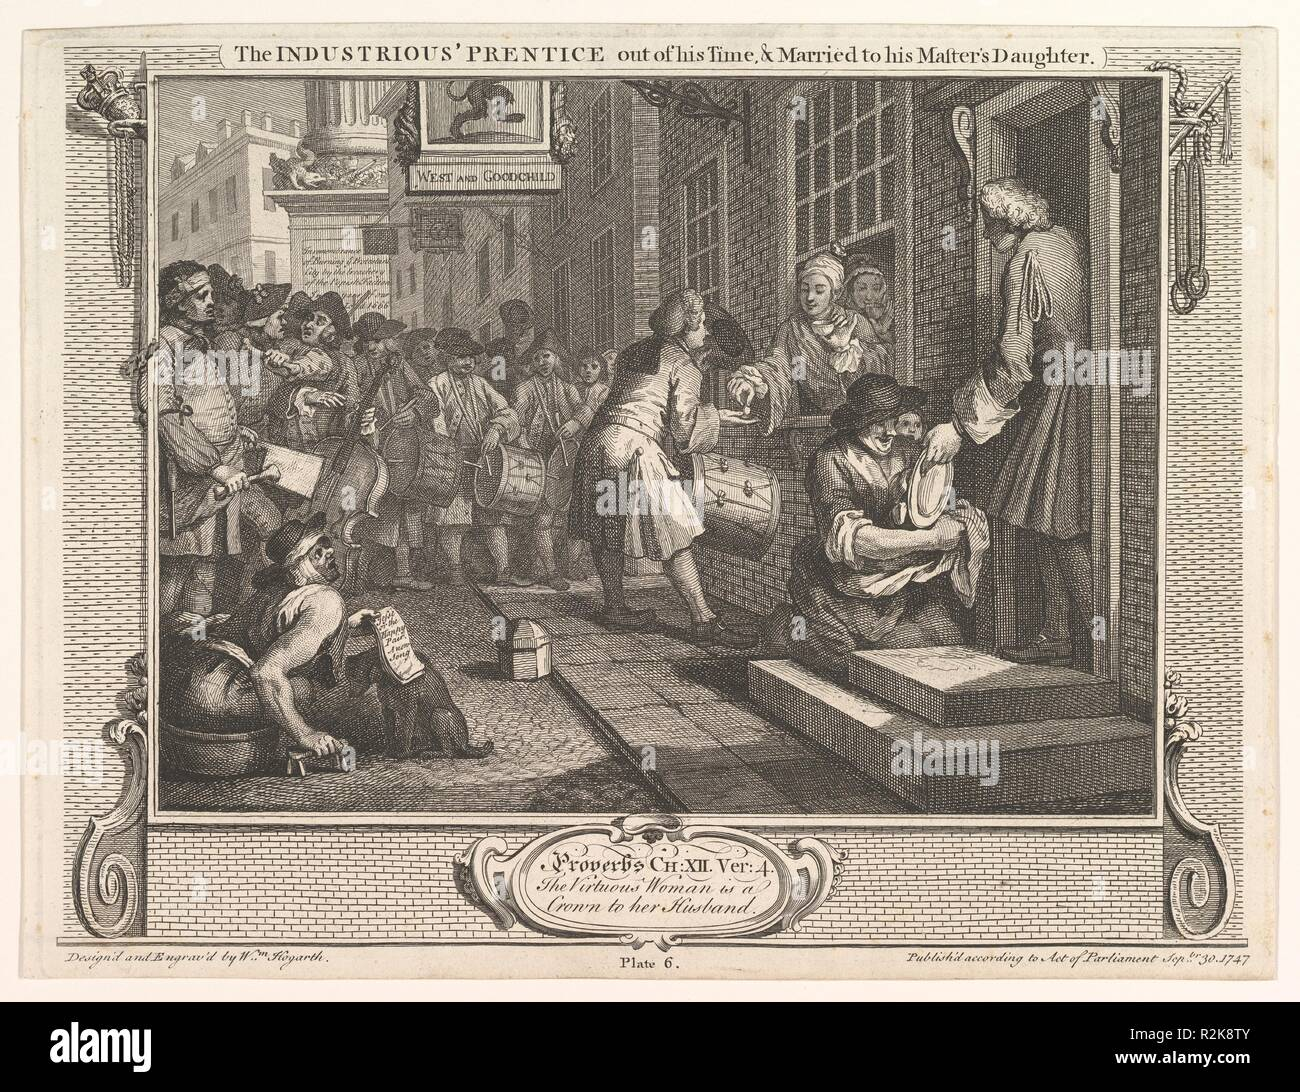 The Industrious 'Prentice Out of his Time and Married to his Master's Daughter (Industry and Idleness, plate 6). Artist: William Hogarth (British, London 1697-1764 London). Dimensions: plate: 10 3/8 x 13 9/16 in. (26.4 x 34.4 cm)  sheet: 10 9/16 x 13 7/8 in. (26.8 x 35.2 cm). Date: September 30, 1747. Museum: Metropolitan Museum of Art, New York, USA. Stock Photo